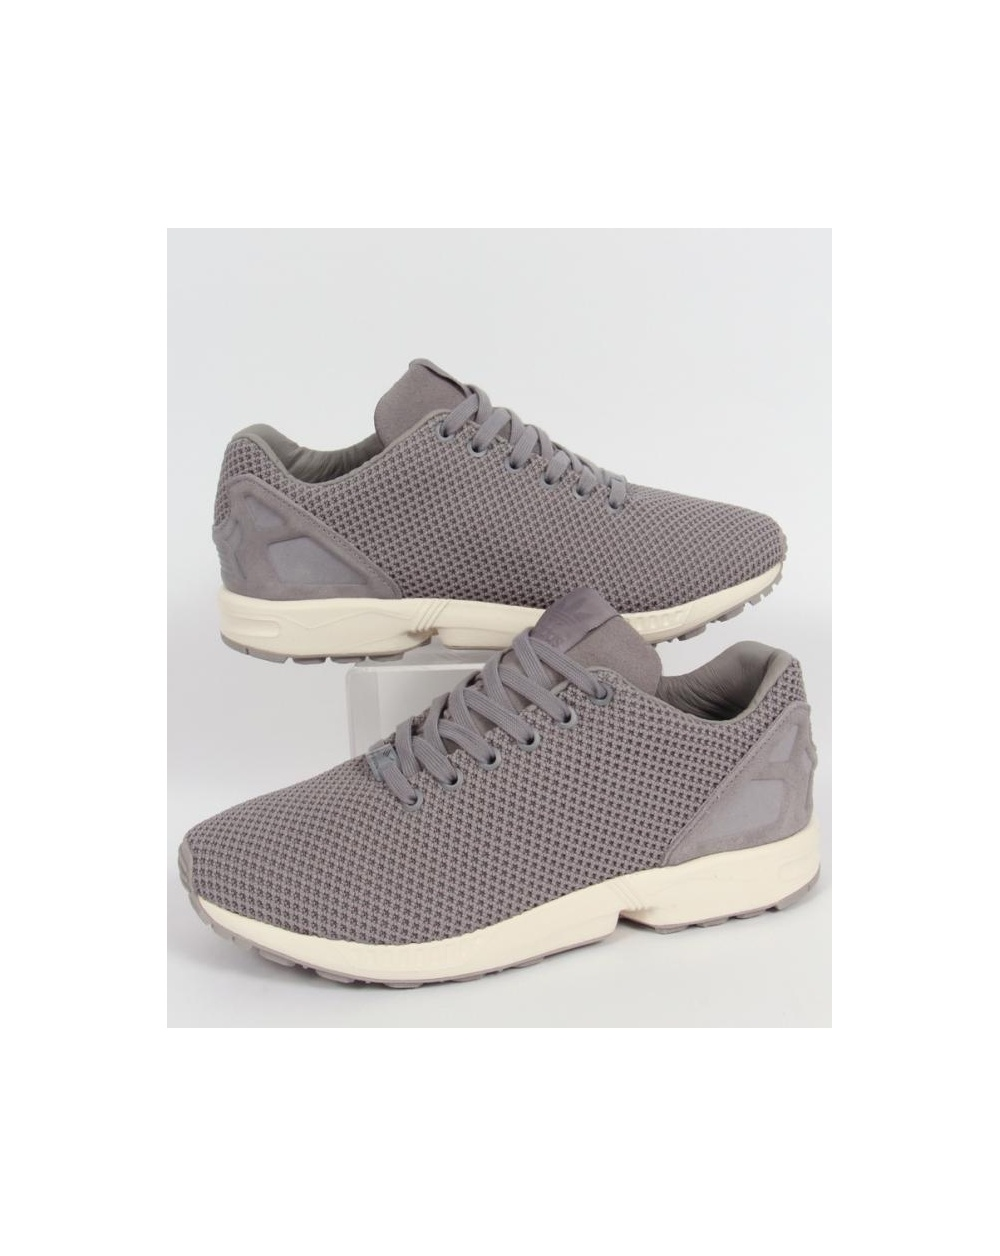 adidas zx flux trainers solid grey original zx flux grey. Black Bedroom Furniture Sets. Home Design Ideas